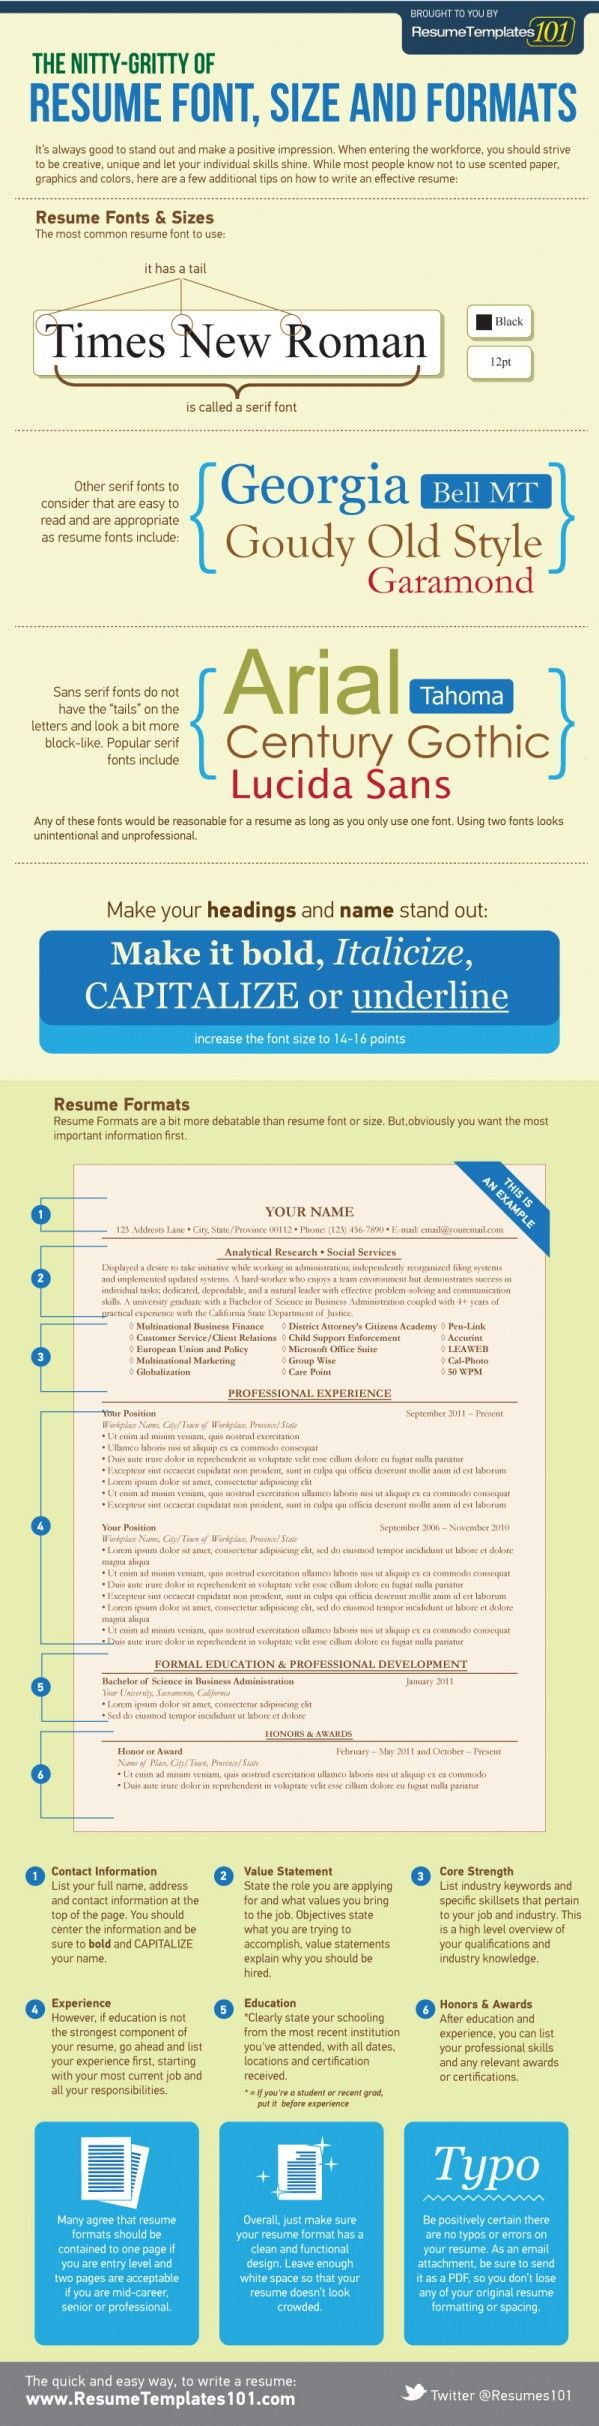 These are some detailed instructions for writing your resume. This includes font type, style and spacing tips.